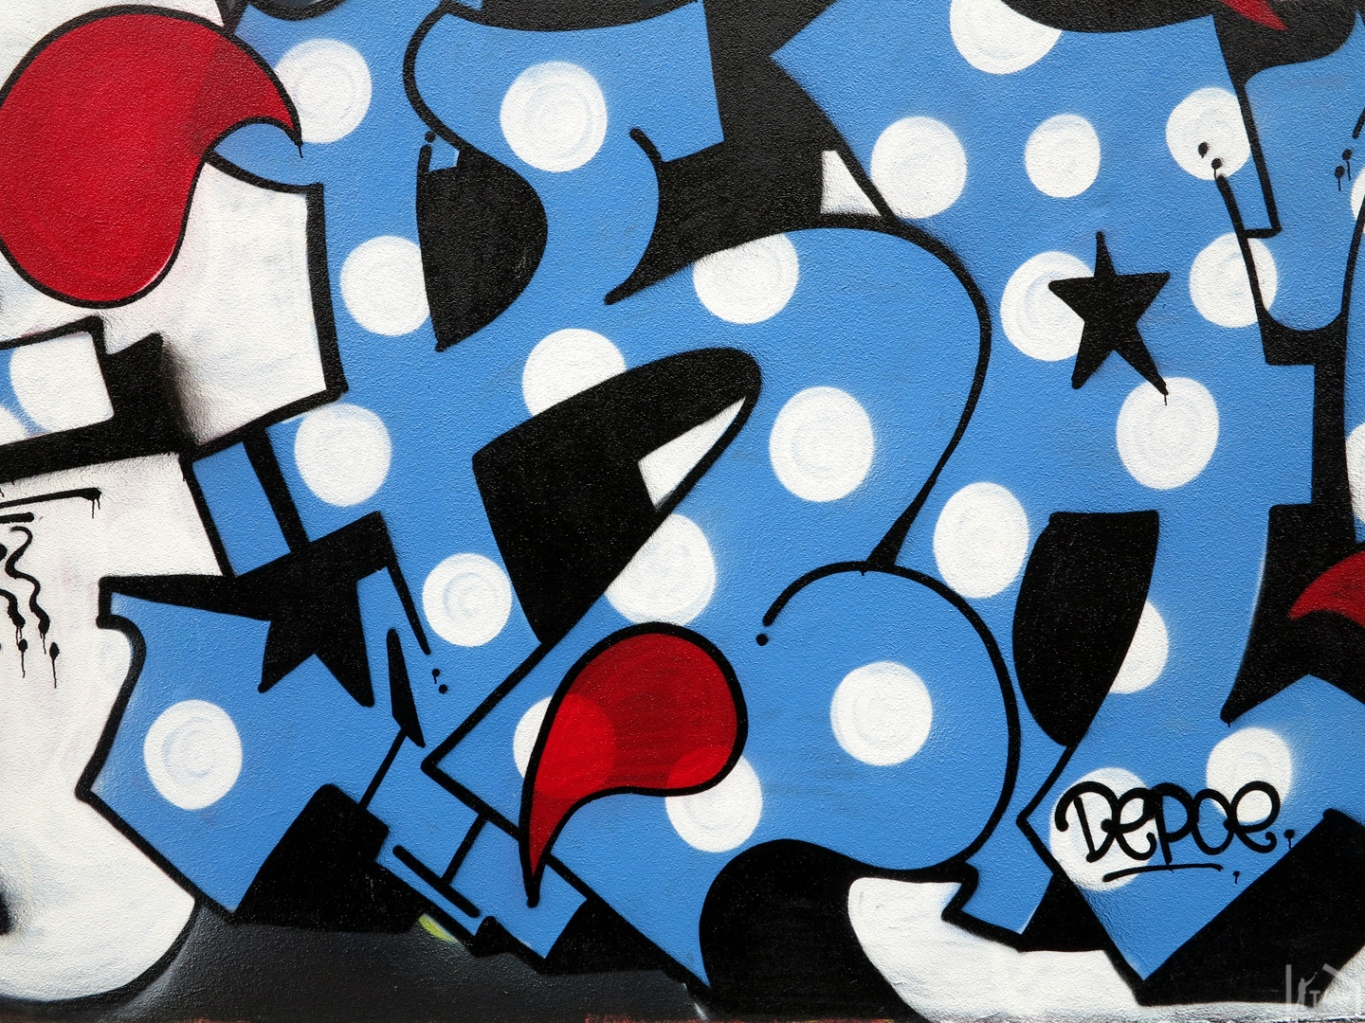 the-fourth-walls-melbourne-graffiti-renks-sens-icee-kawps-fitzroy6